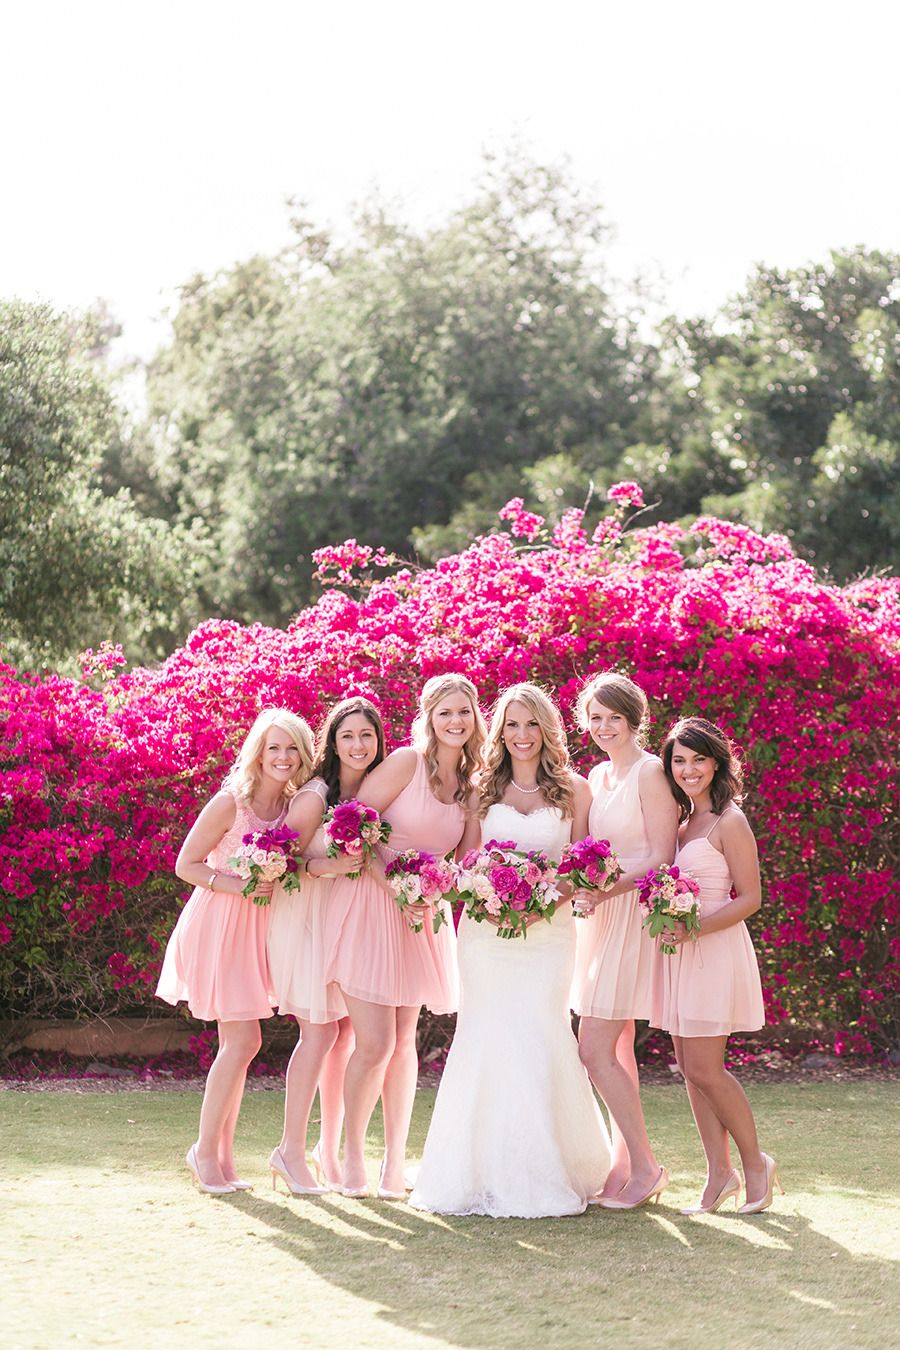 California Garden Wedding Layered with Pink | Damas, Damitas de ...